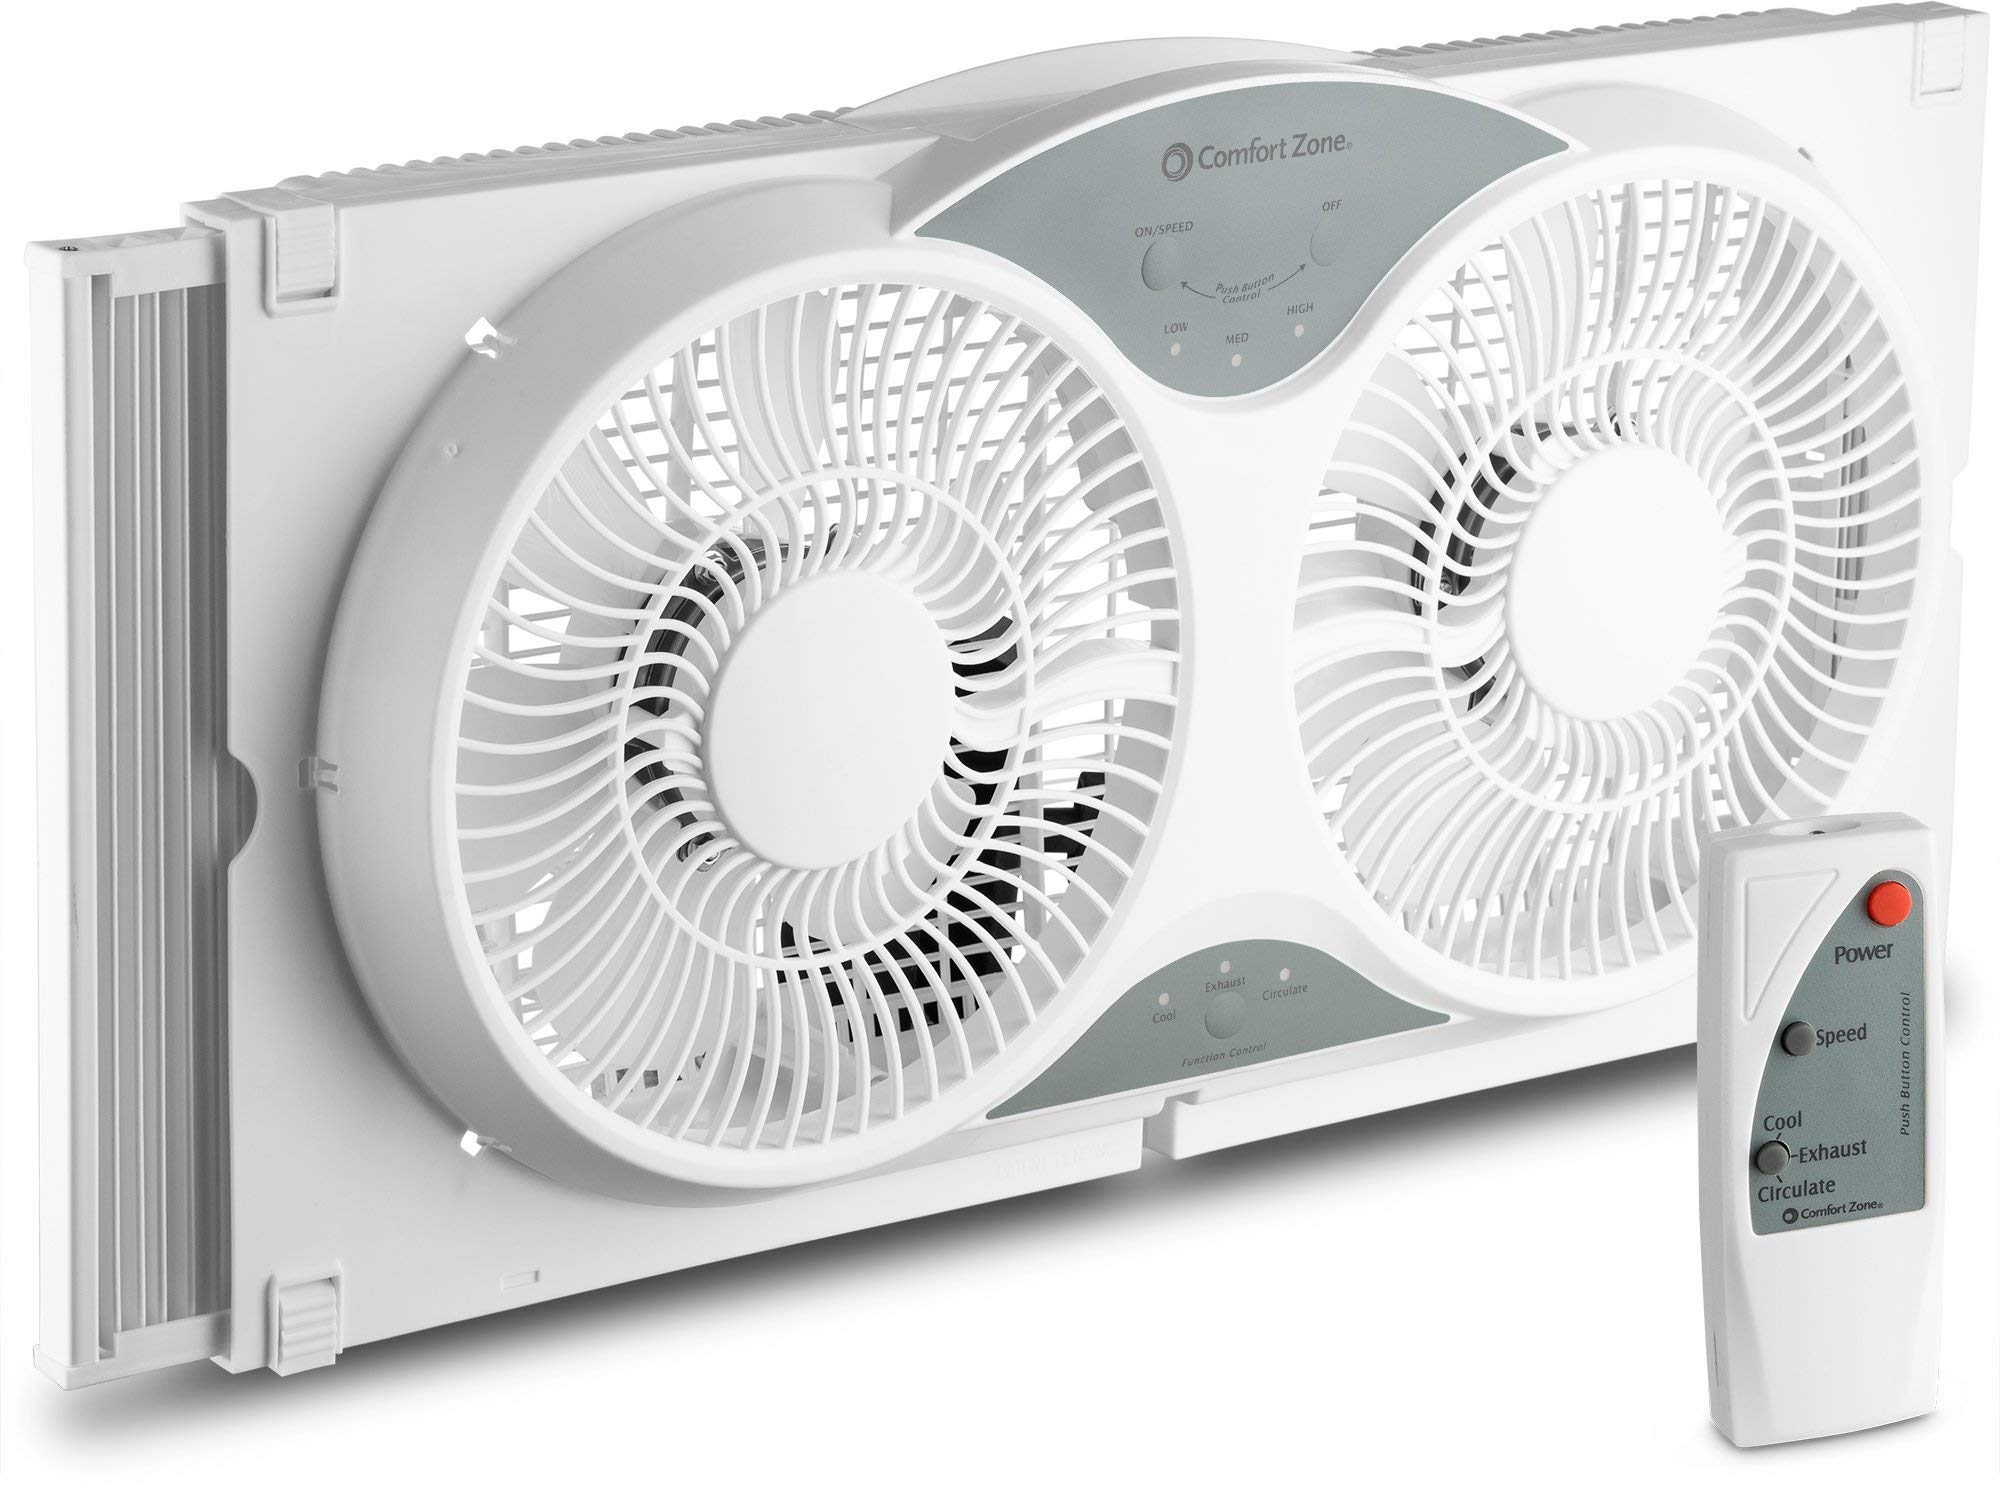 Bovado USA Twin Window Cooling Fan with Remote Control, Electronically Reversible, Includes Bug Screen and Fabric Cover, Locking Extenders to fit Large Windows (Min. 23.5in Max. 37in) (Renewed) by BOVADO USA